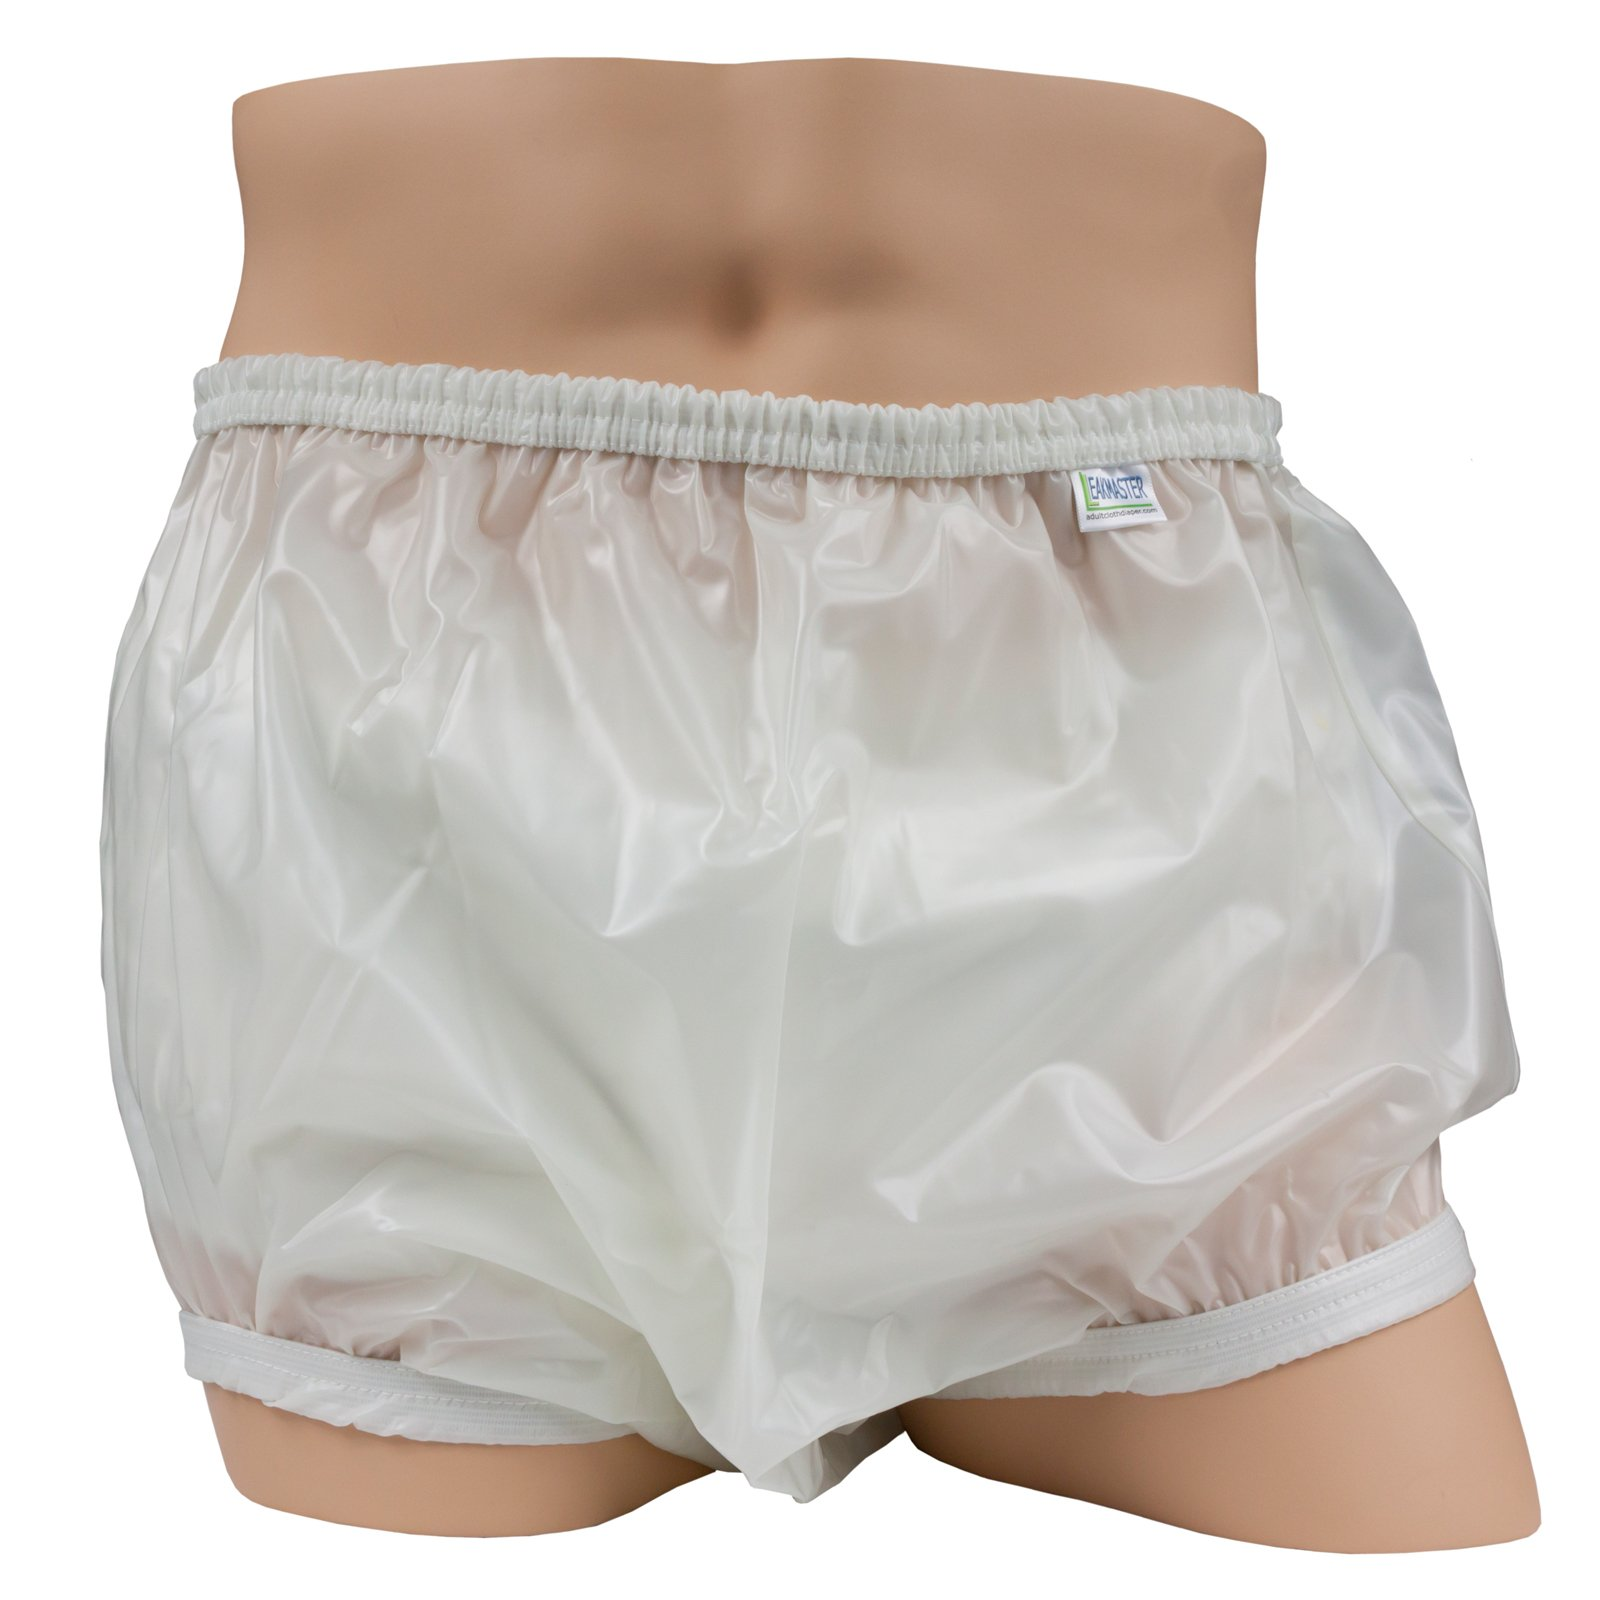 Adult diaper briefs for heavy period